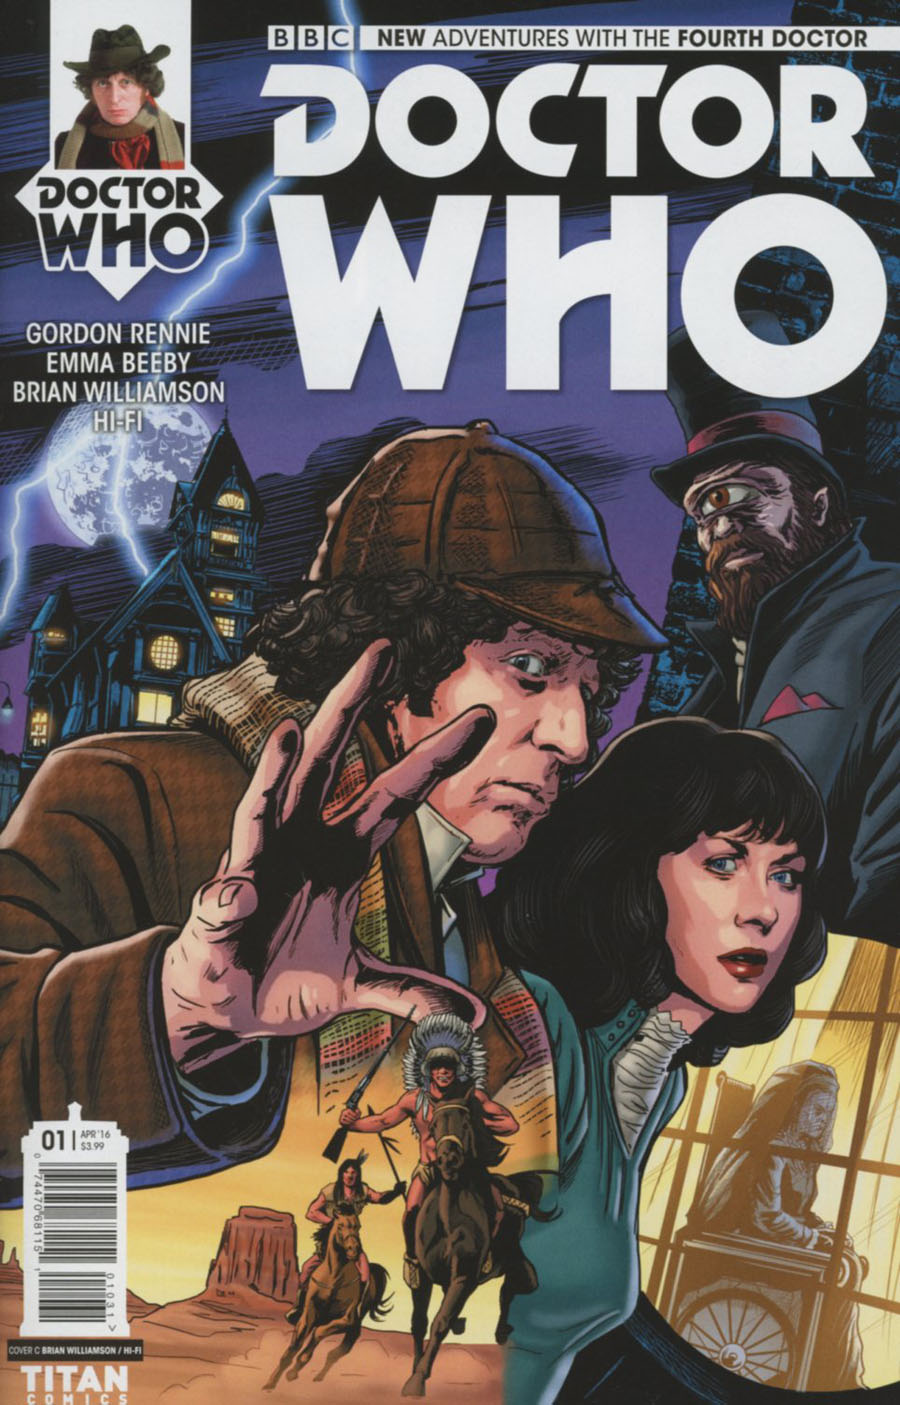 Doctor Who 4th Doctor #1 Cover C Variant Brian Williamson Cover